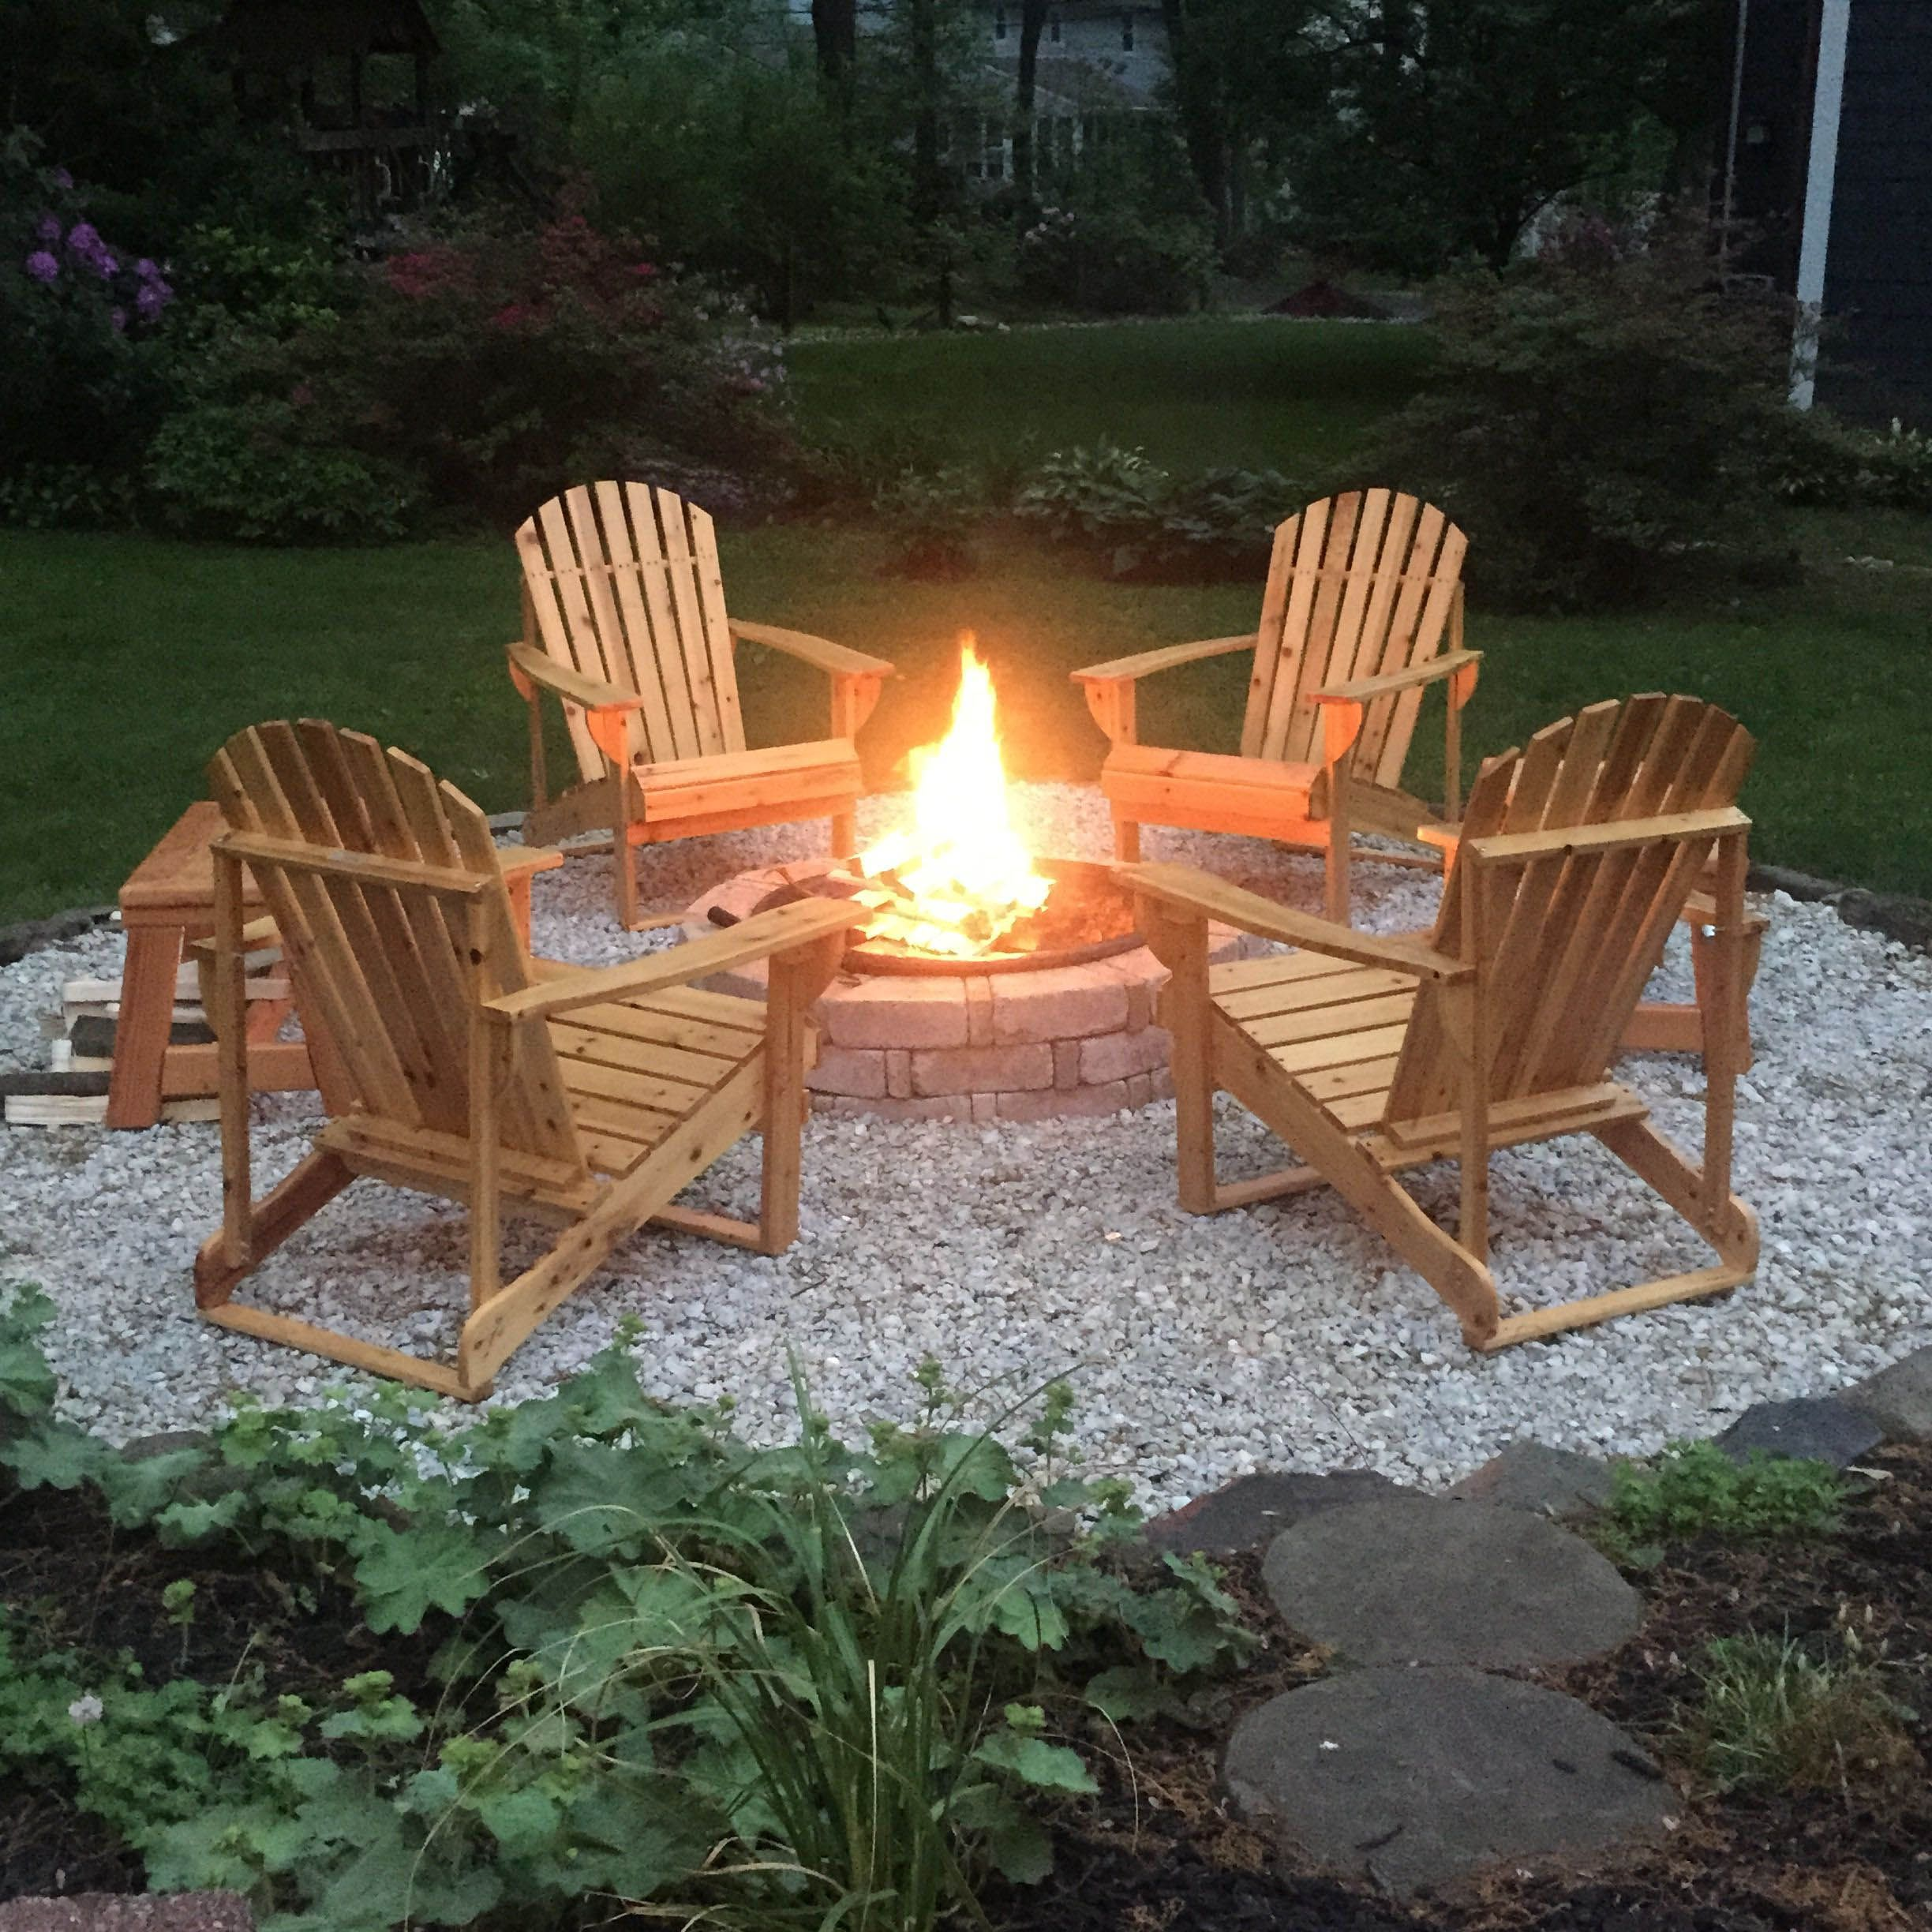 Inspiring Diy Fire Pit Plans Ideas To Make S Mores With Your Family Fire Pit Backyard Backyard Fire Backyard